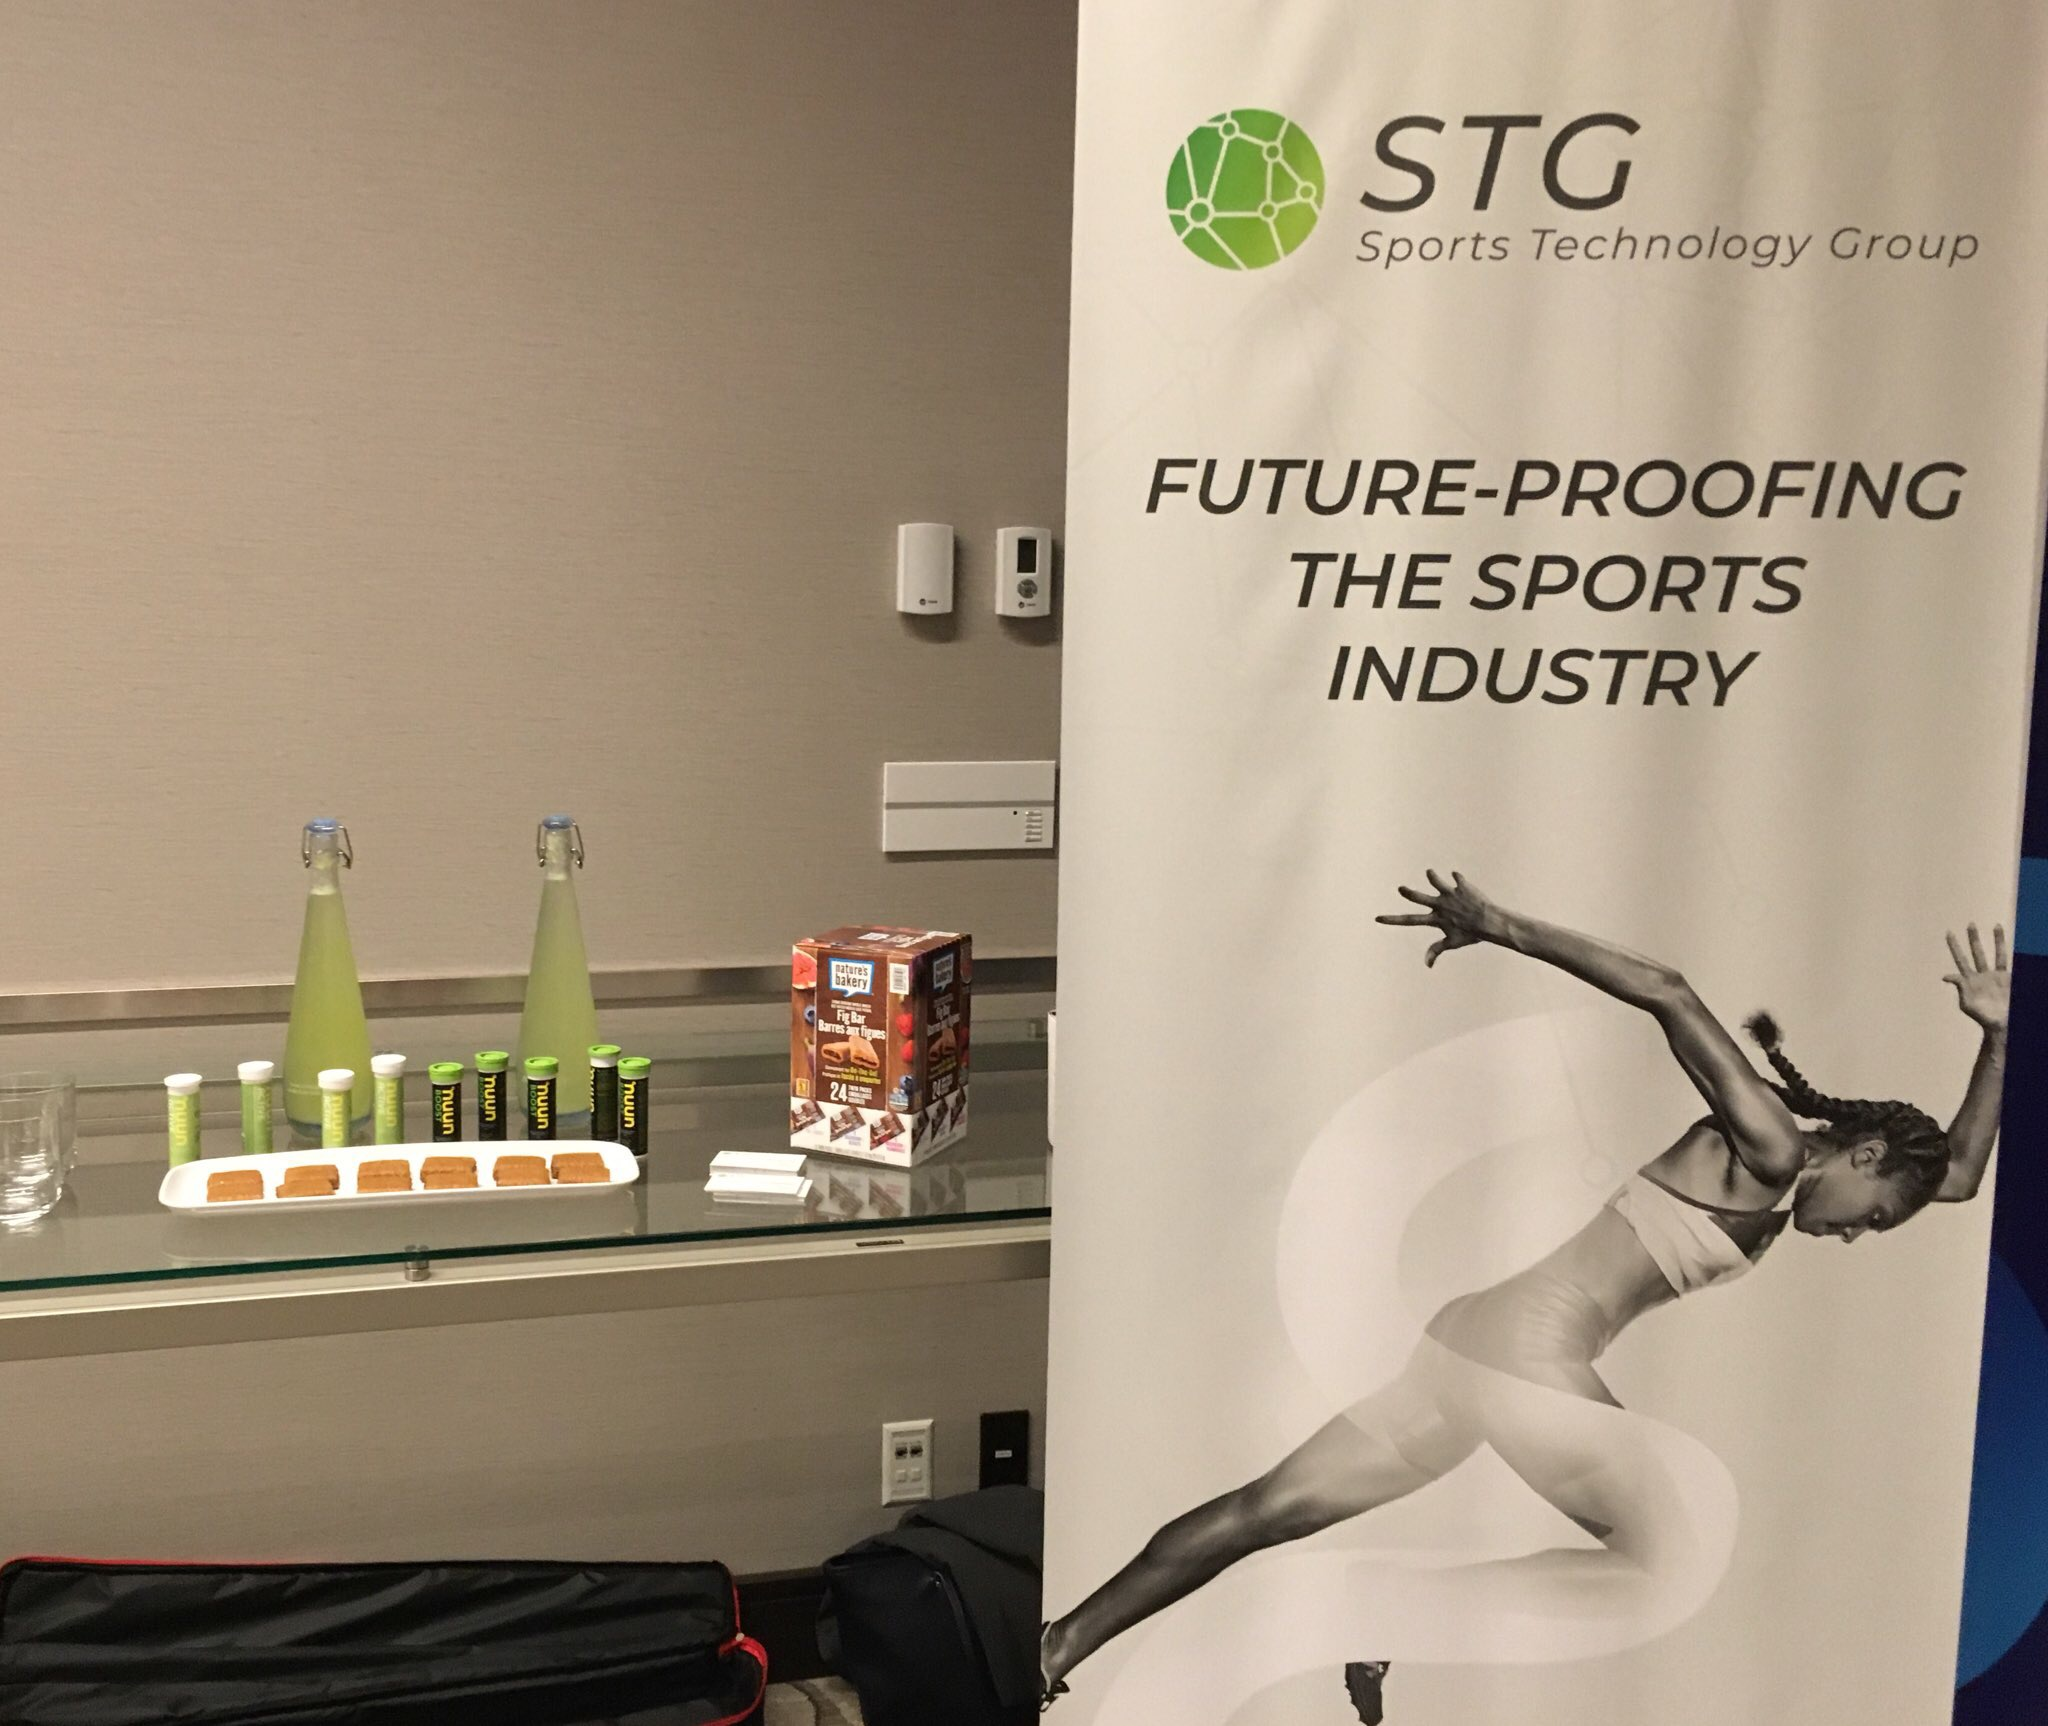 STG's booth in the speakers lounge supplying extra energy for the speakers!